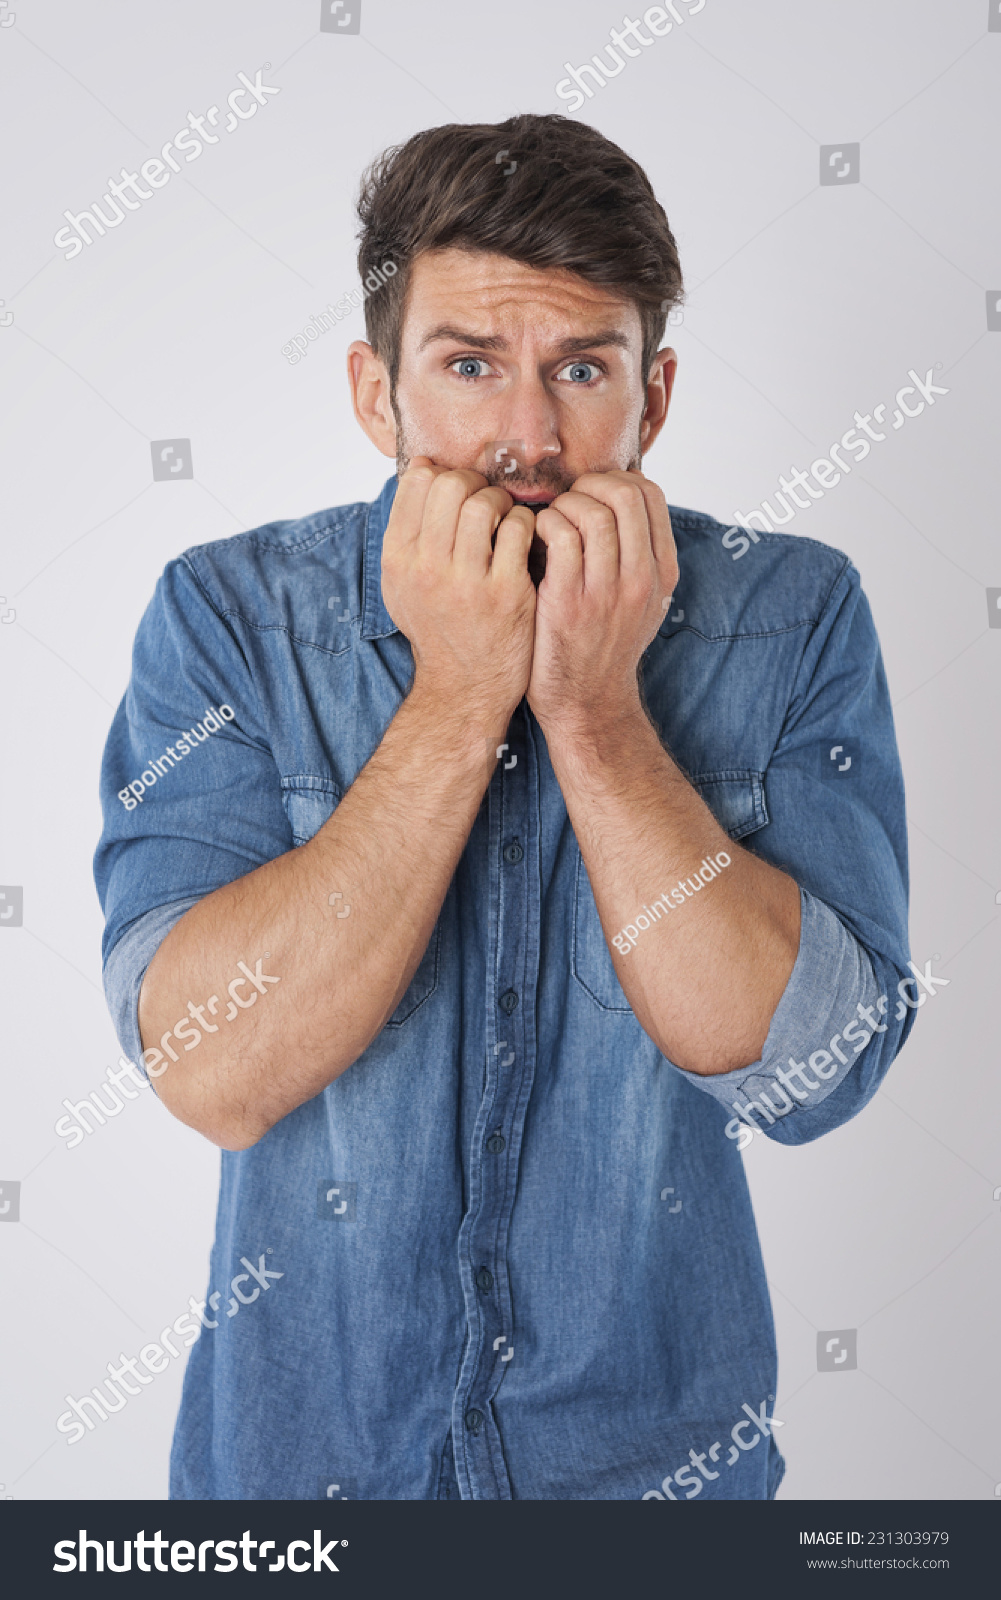 Man Biting Nails Fear Stock Photo & Image (Royalty-Free) 231303979 ...